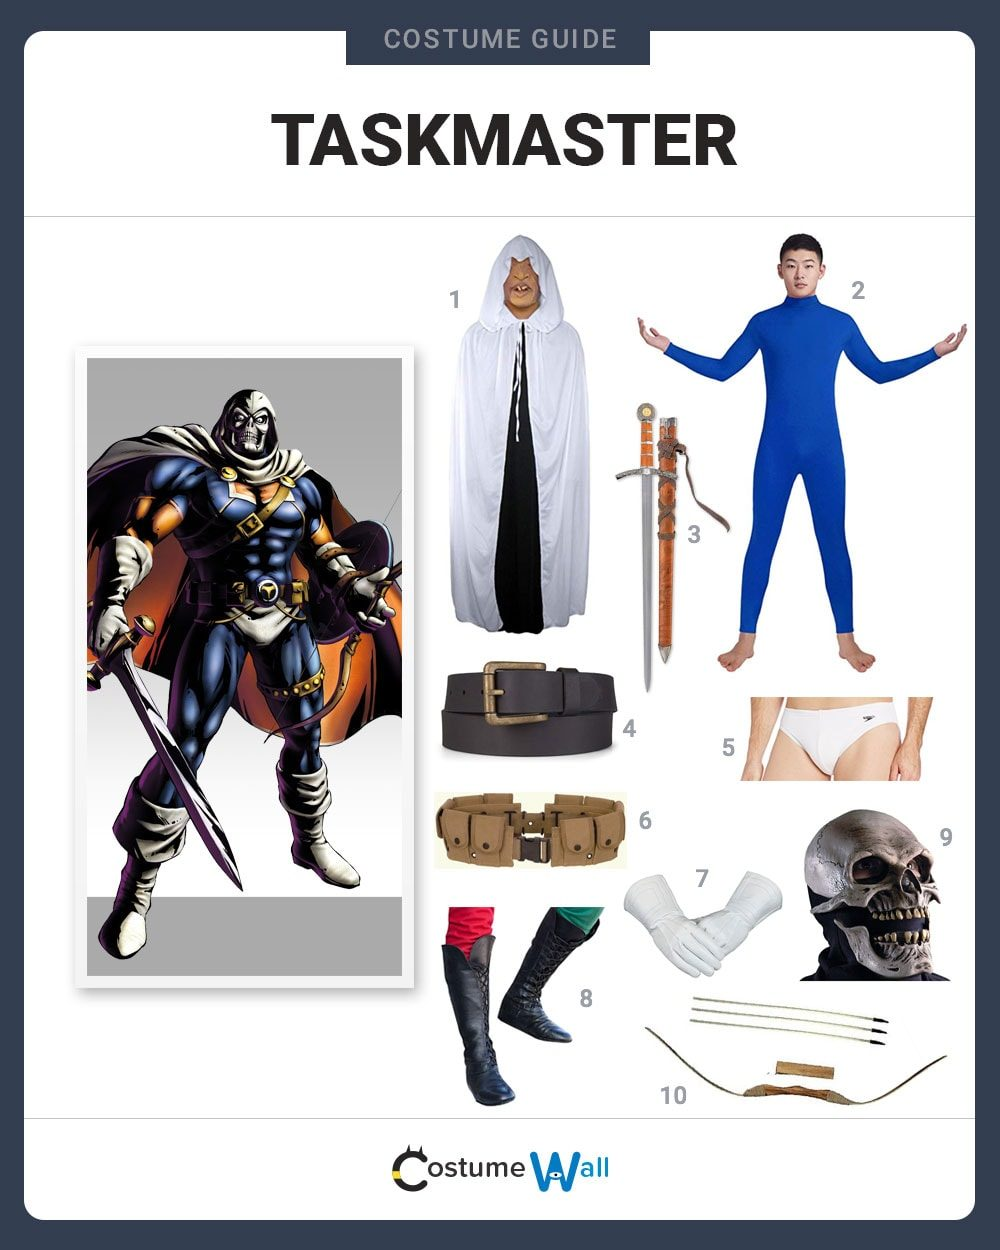 Taskmaster Costume Guide